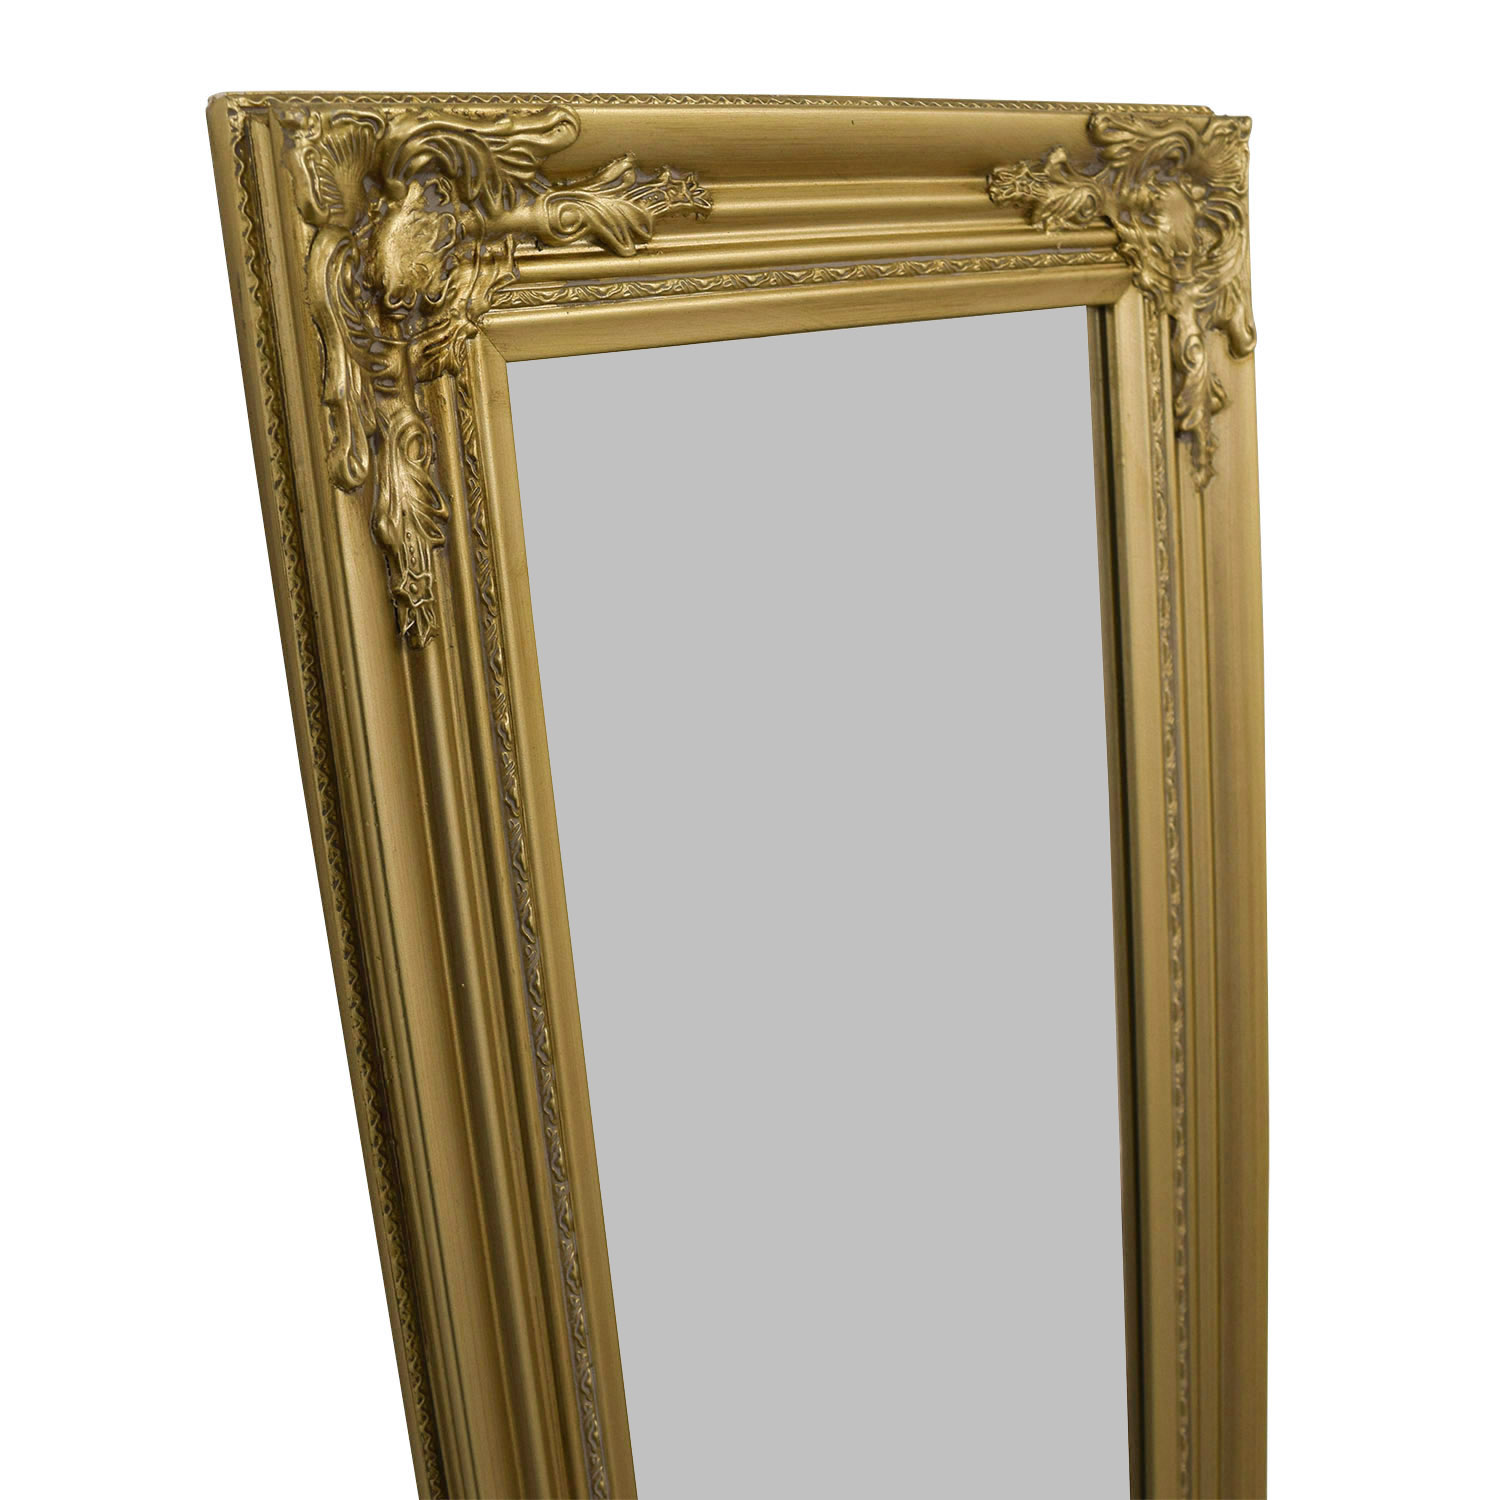 48 off full length ornate gold mirror decor